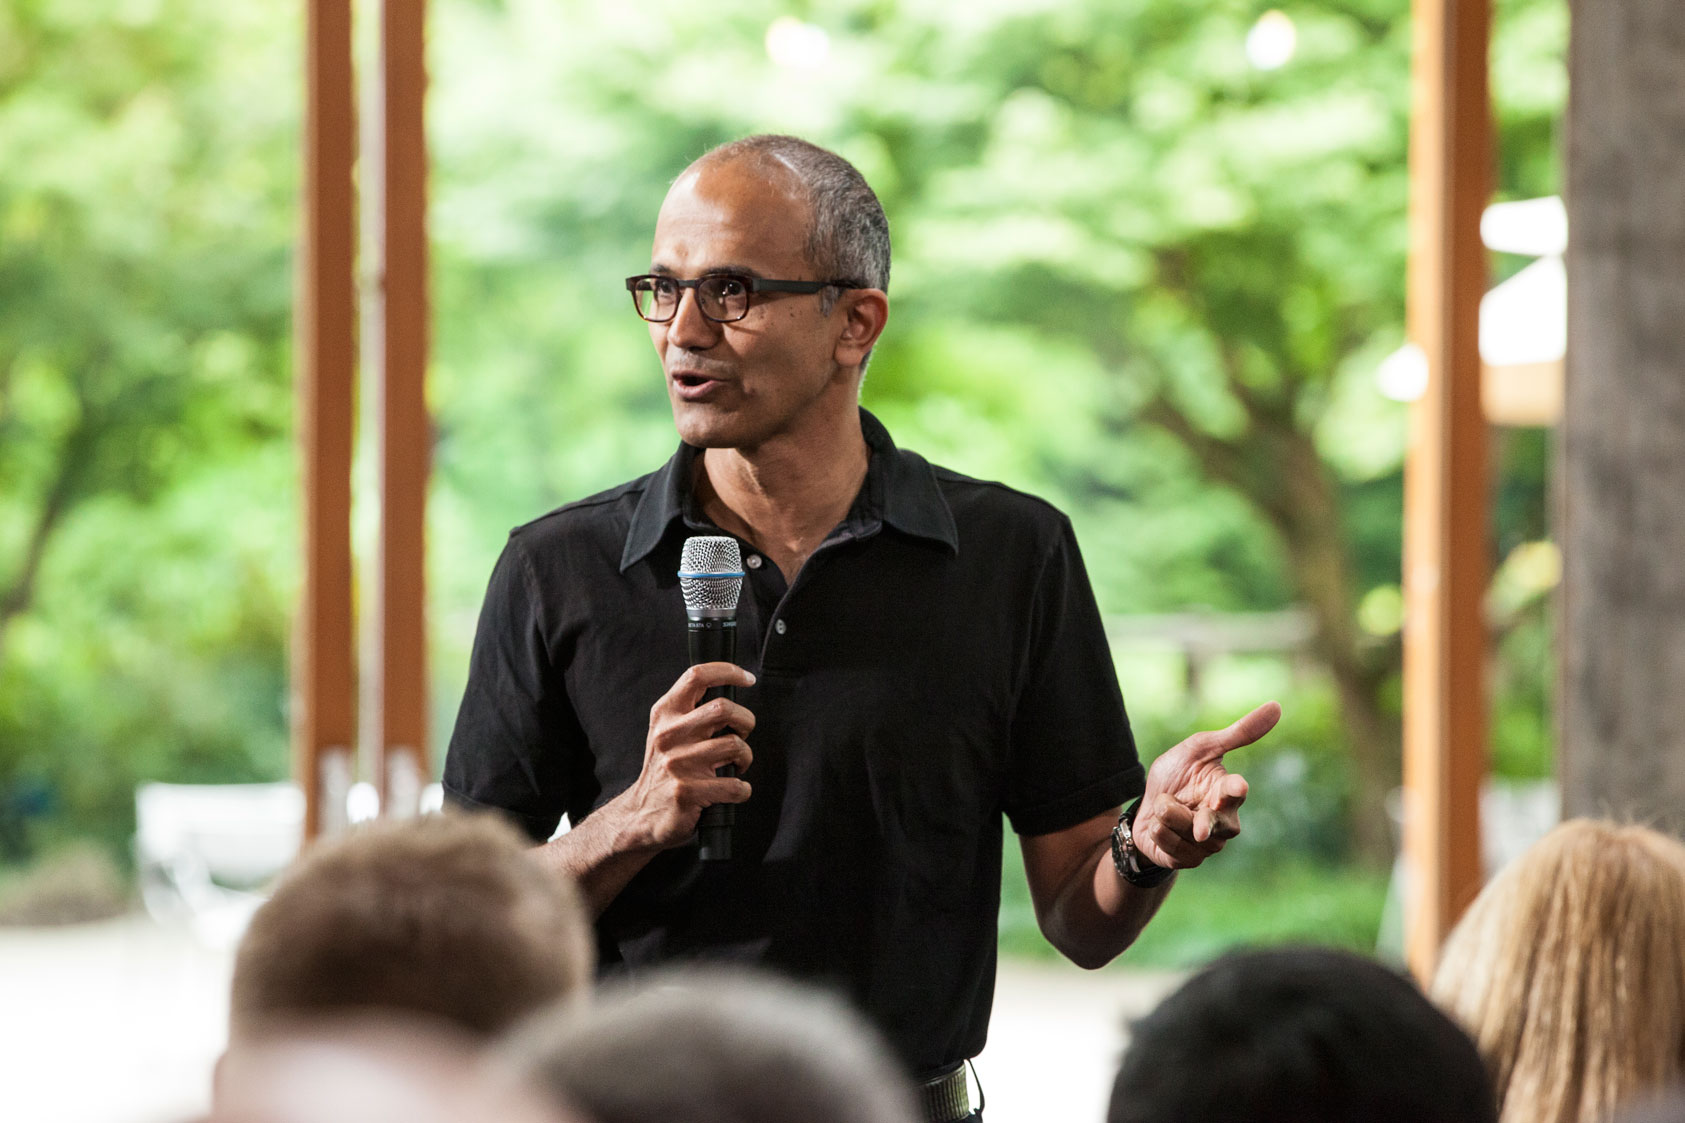 Satya Nadella, executive vice president, Cloud and Enterprise, addresses employees during the One Microsoft Town Hall event July 11, 2013.